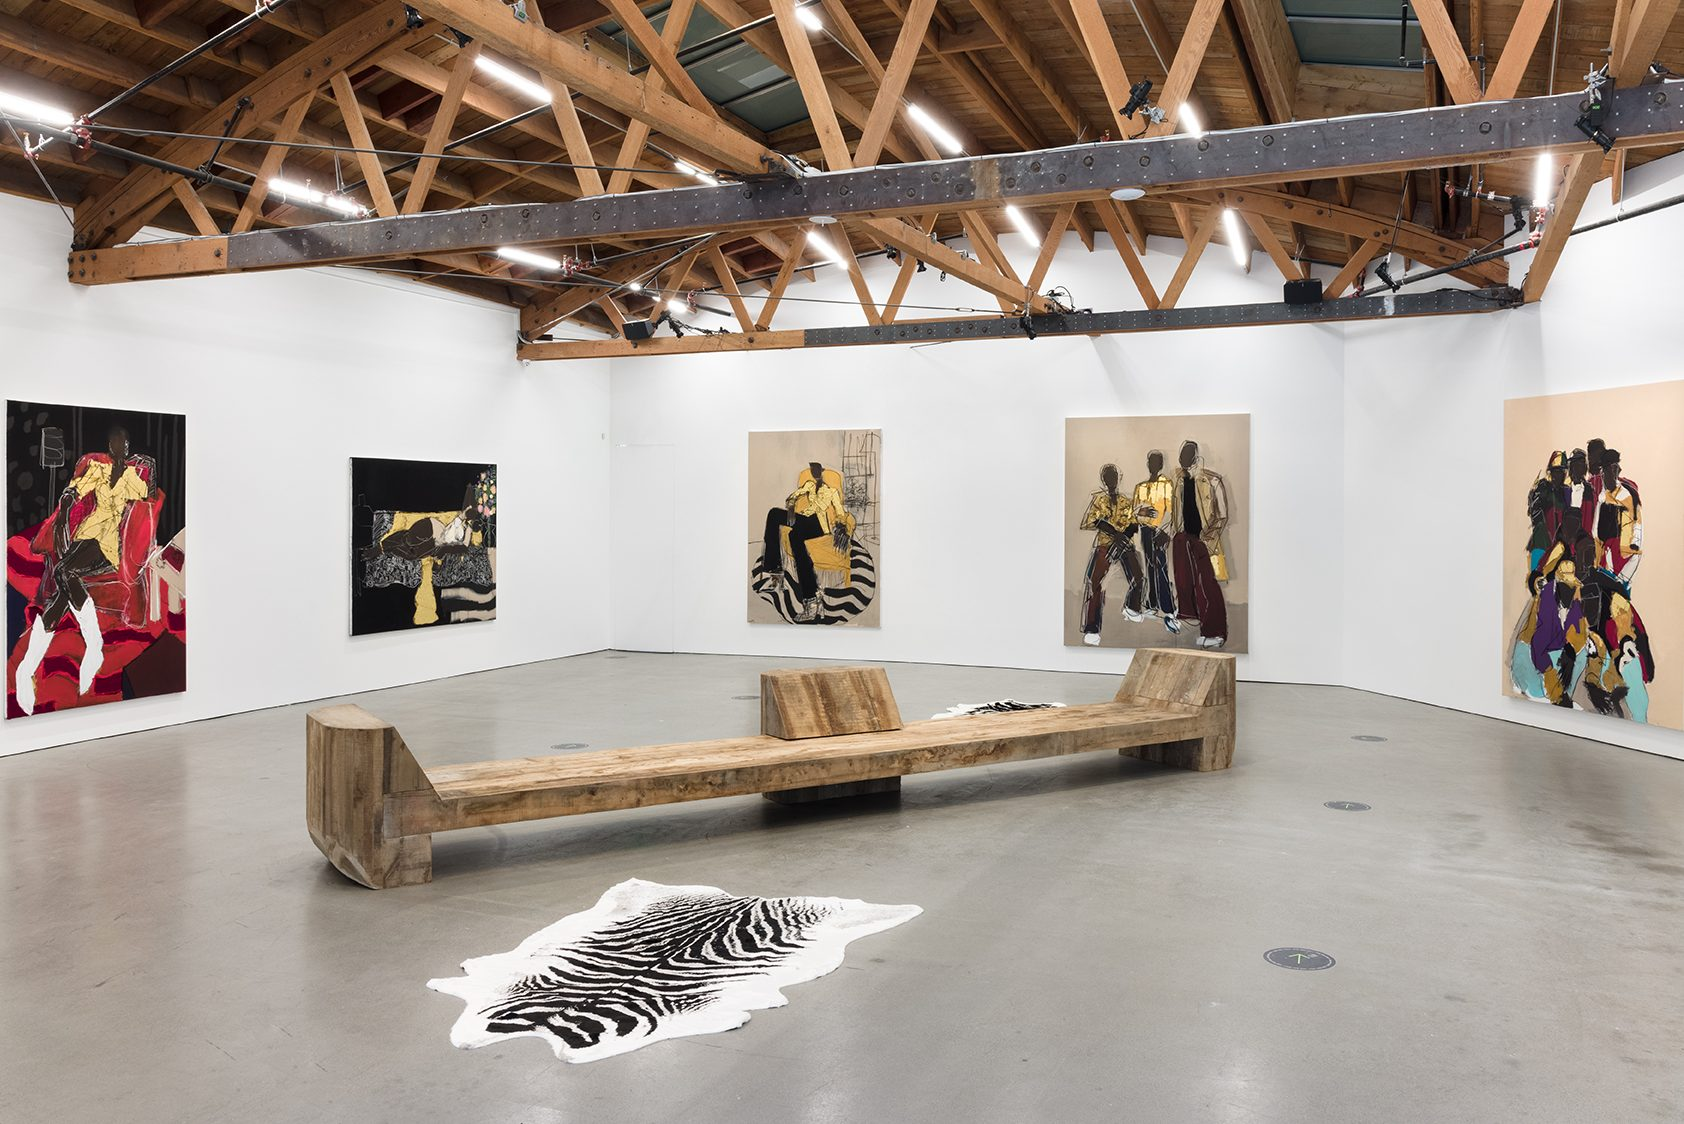 Gallery space with polished concrete floor, geometric white walls under a curved wood ceiling, upheld by exposed wood support beams. Five paintings populate three walls, each striking, full-body portraits of Black individuals, some standing together in groups, some lounging on living room furniture. A long wooden bench stretches out in the middle of the space, next two zebra-print carpets.